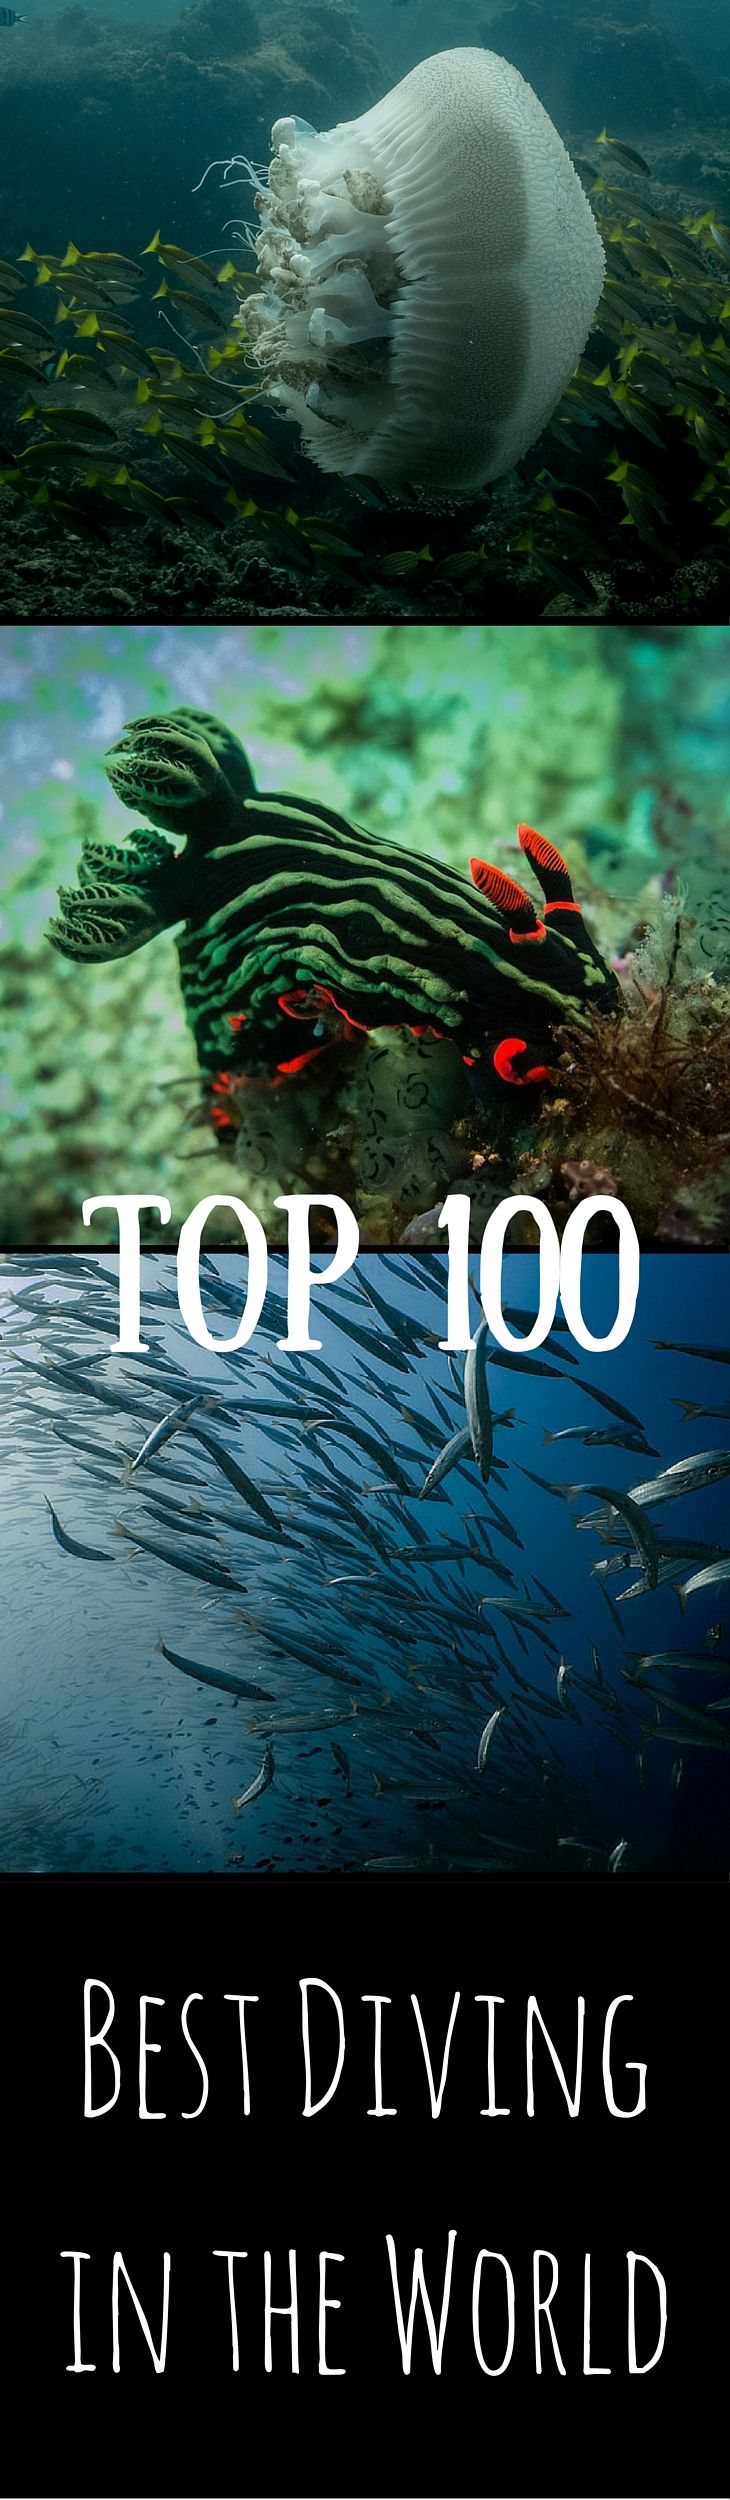 Here is 100 sites with the best diving in the world. As of right now it is my goal to dive every one of them! Want the best diving? This is where to go!